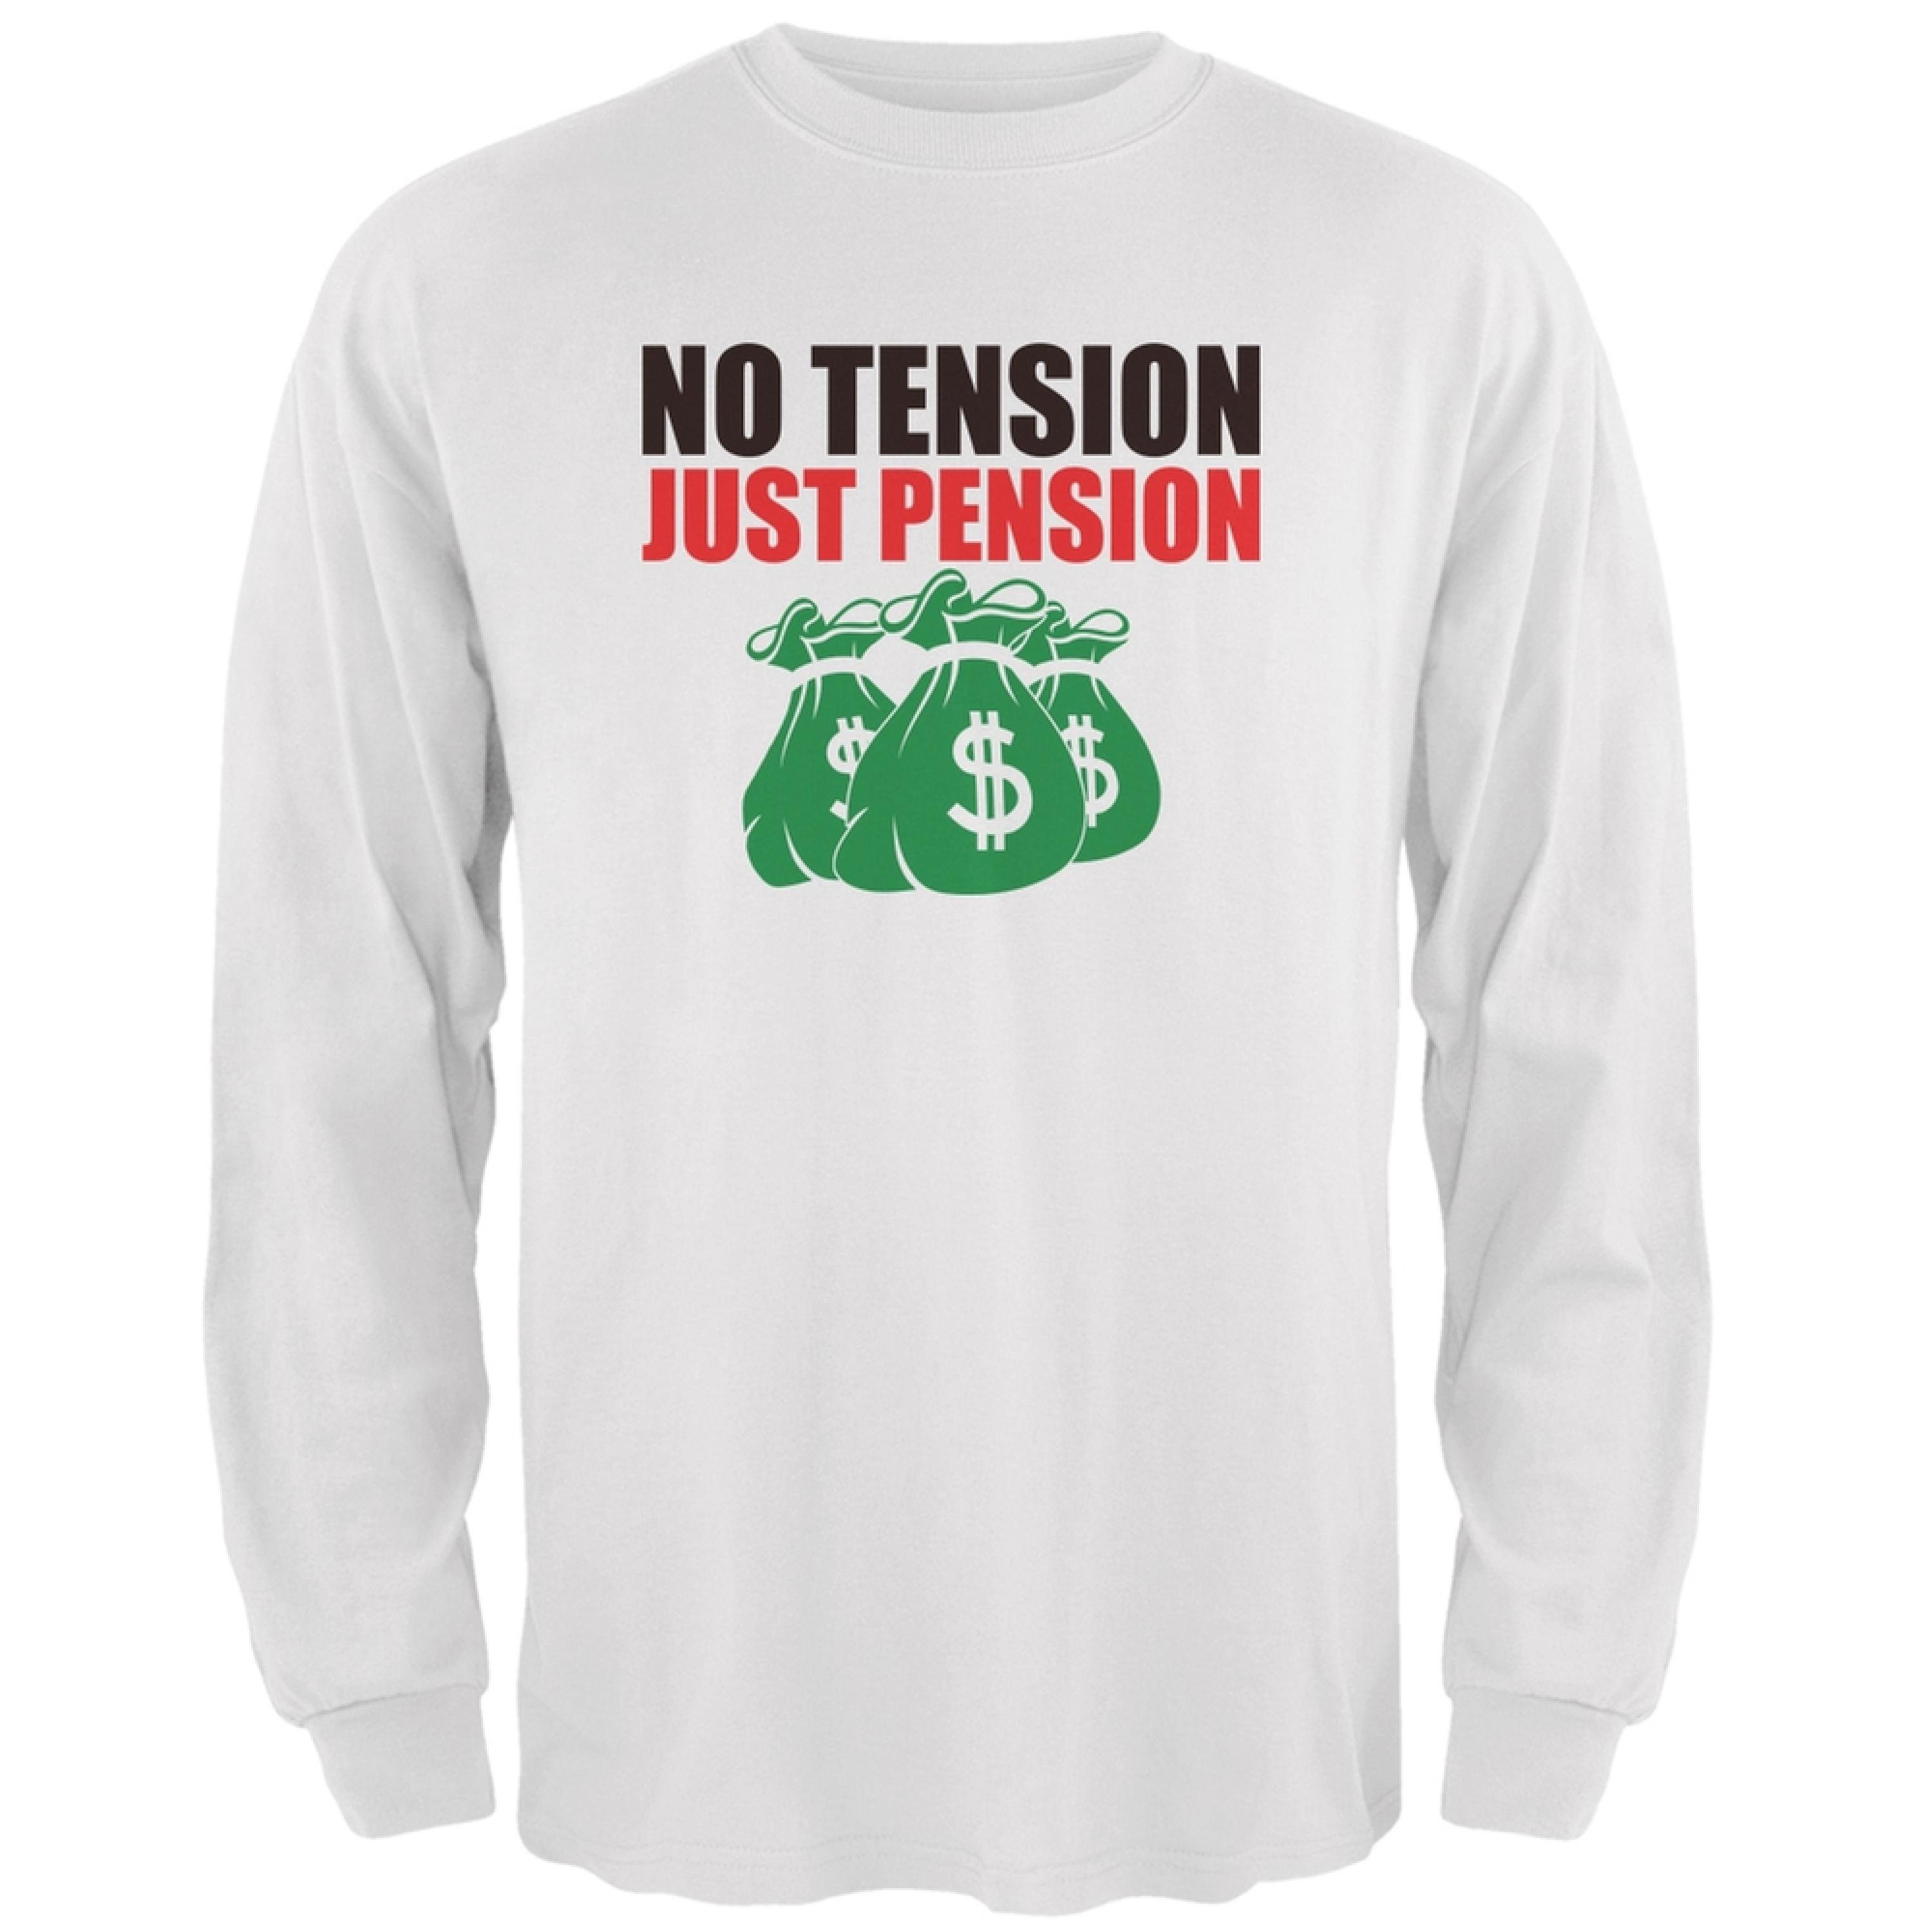 Retirement No Tension Just Pension White Adult Long Sleeve T-Shirt